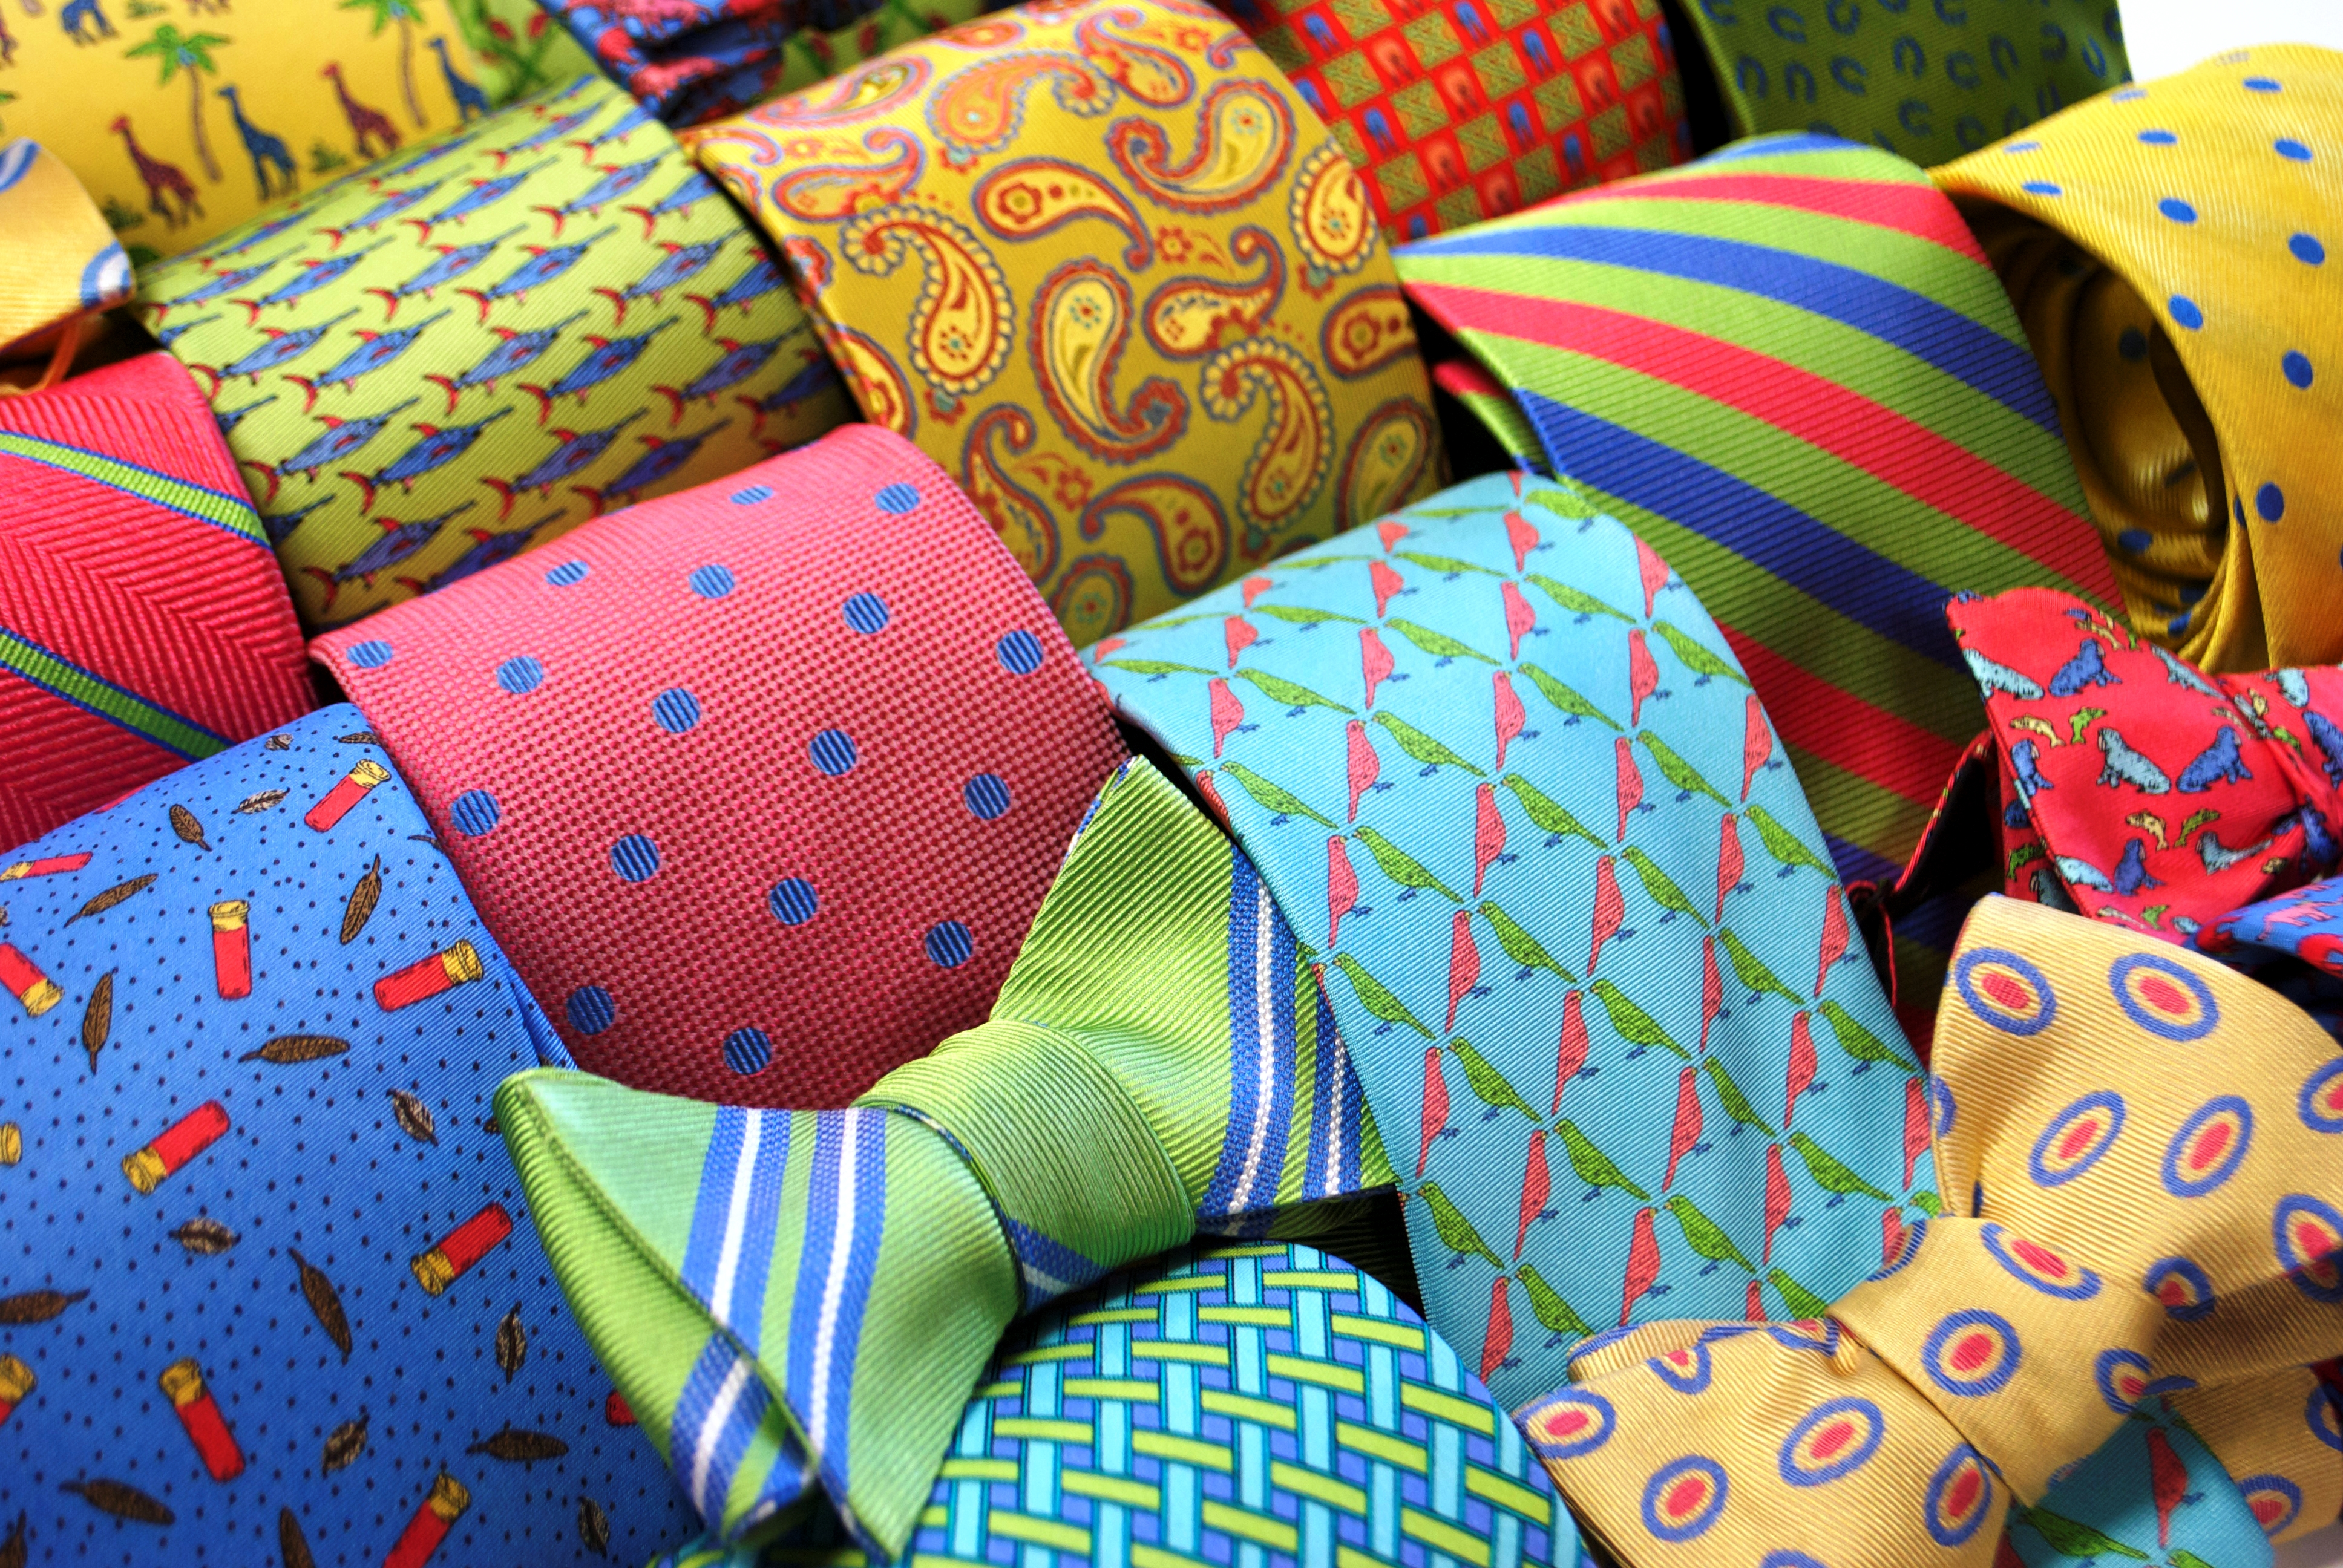 American Made Men's Neckties and Bow Ties from Peter Blair #usalovelsited #mensfashion